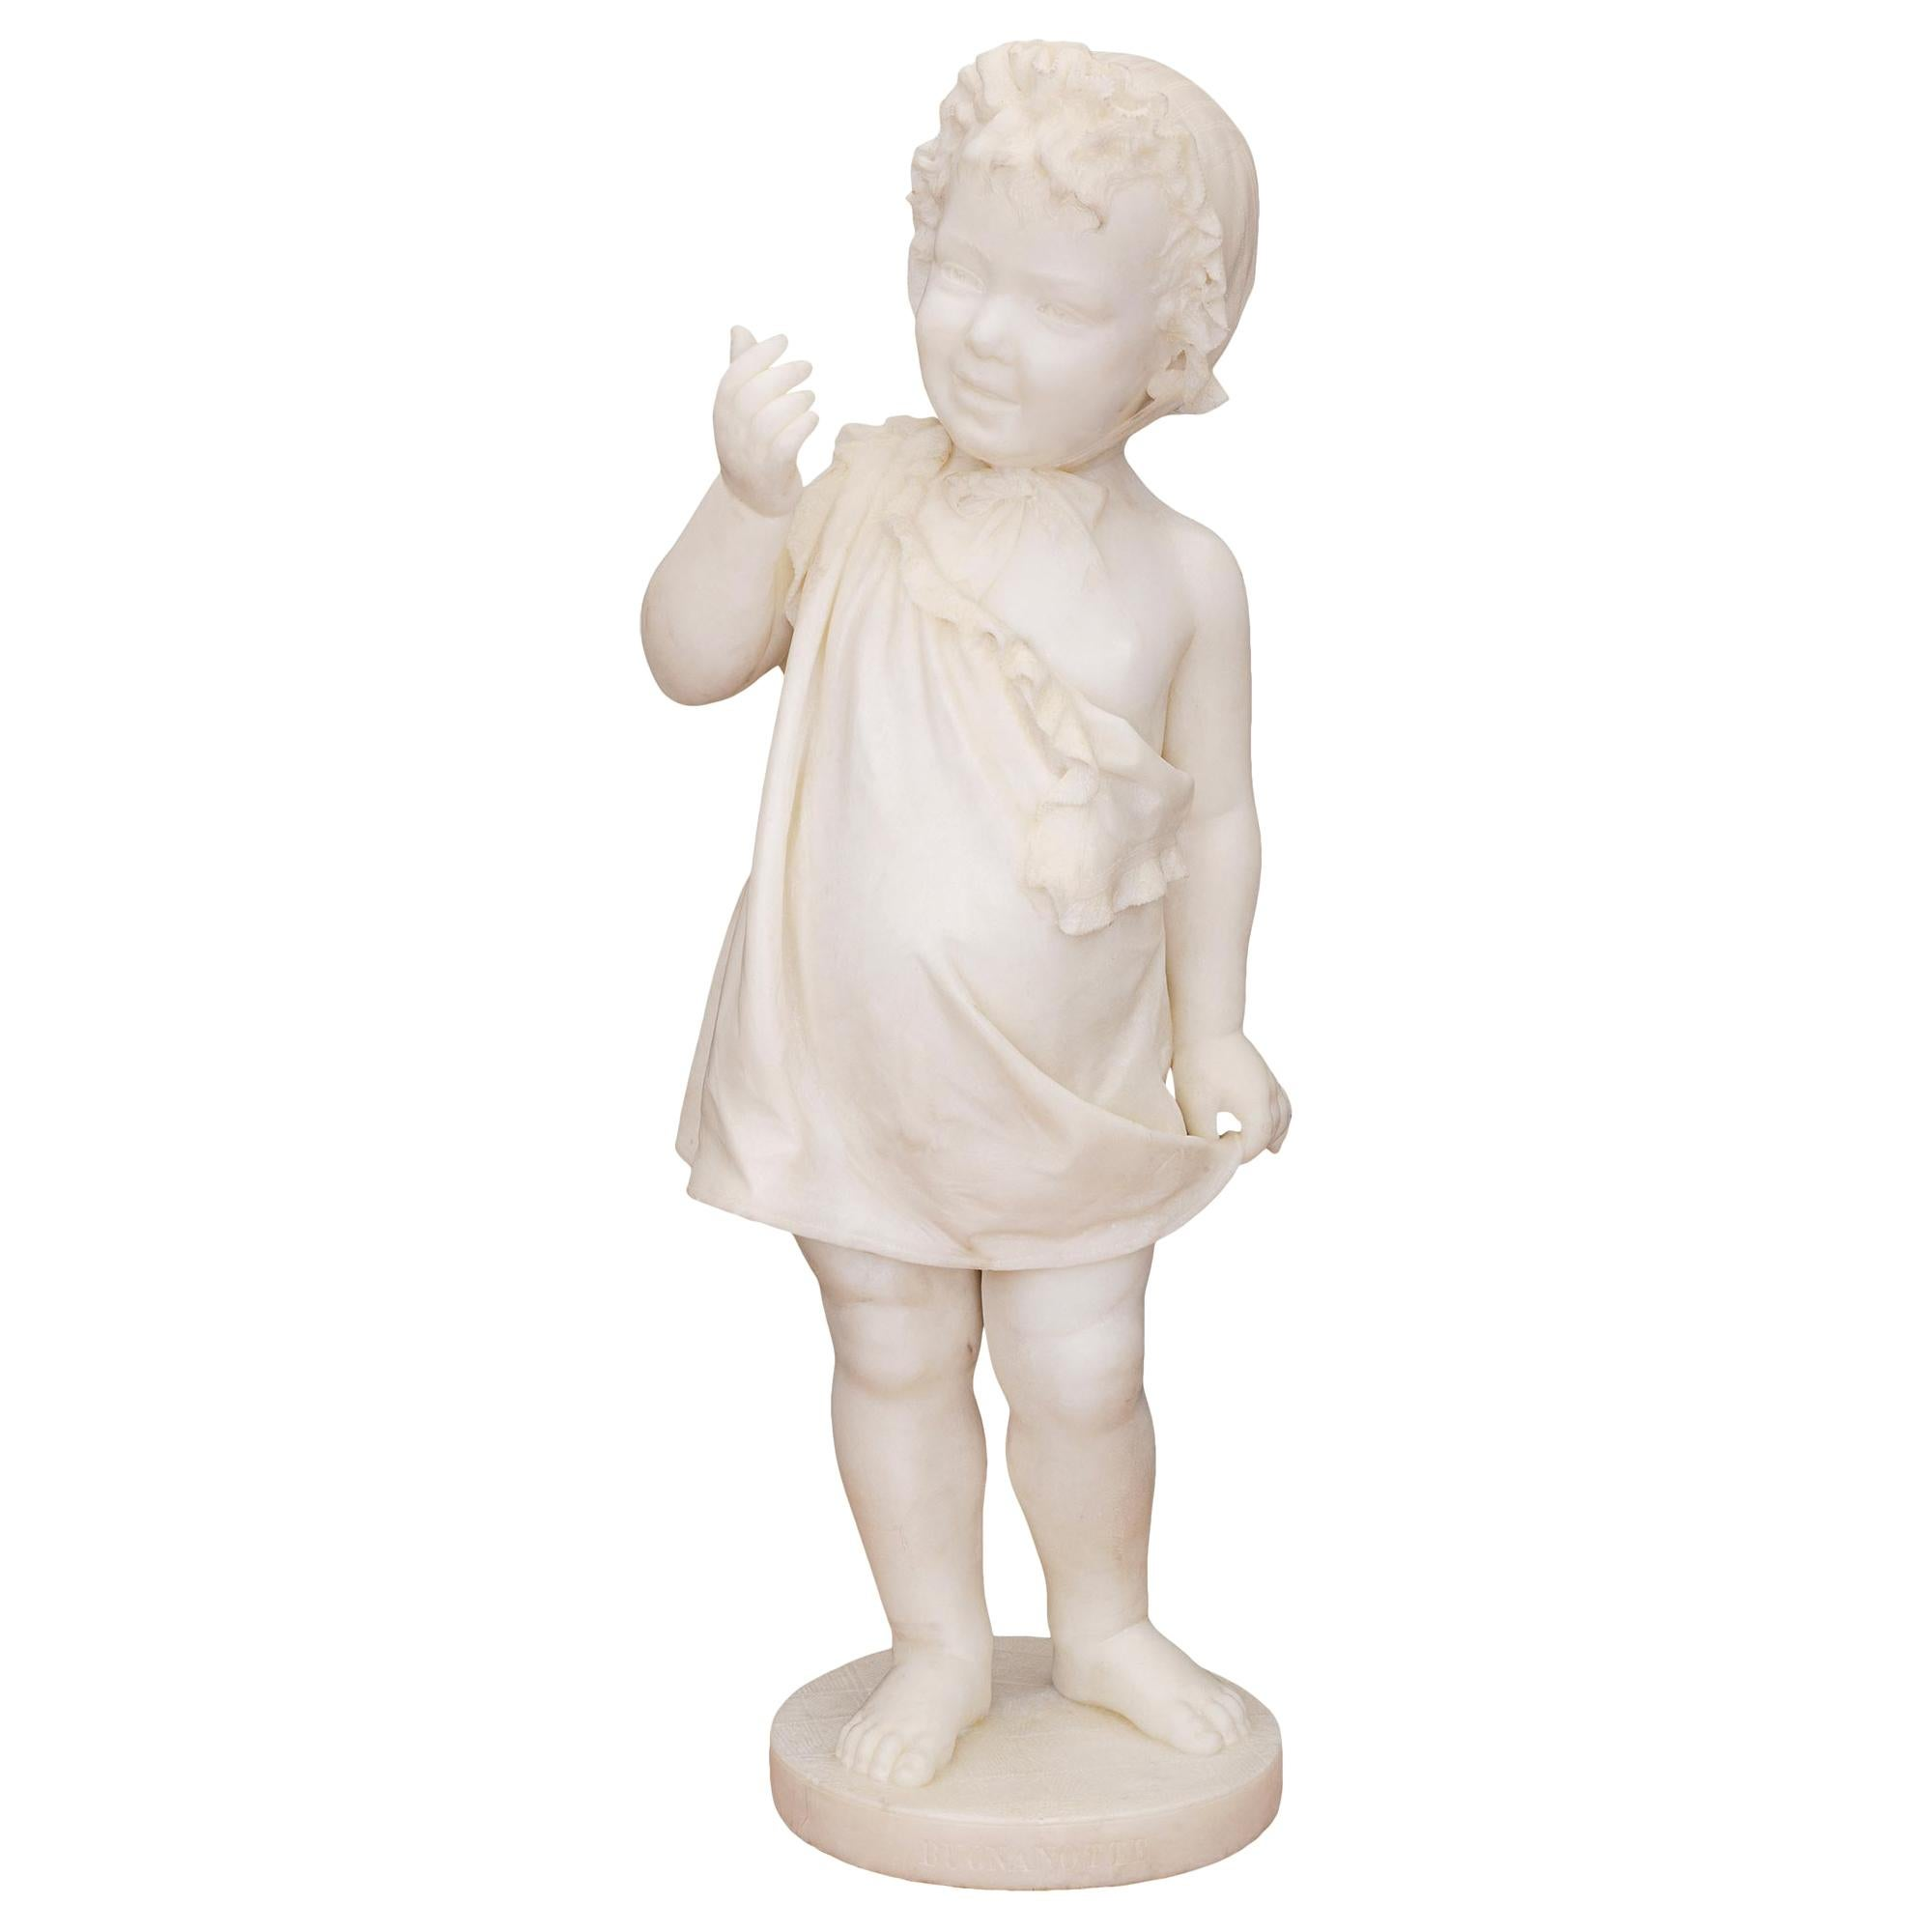 Italian 19th Century White Carrara Marble Statue of a Young Girl